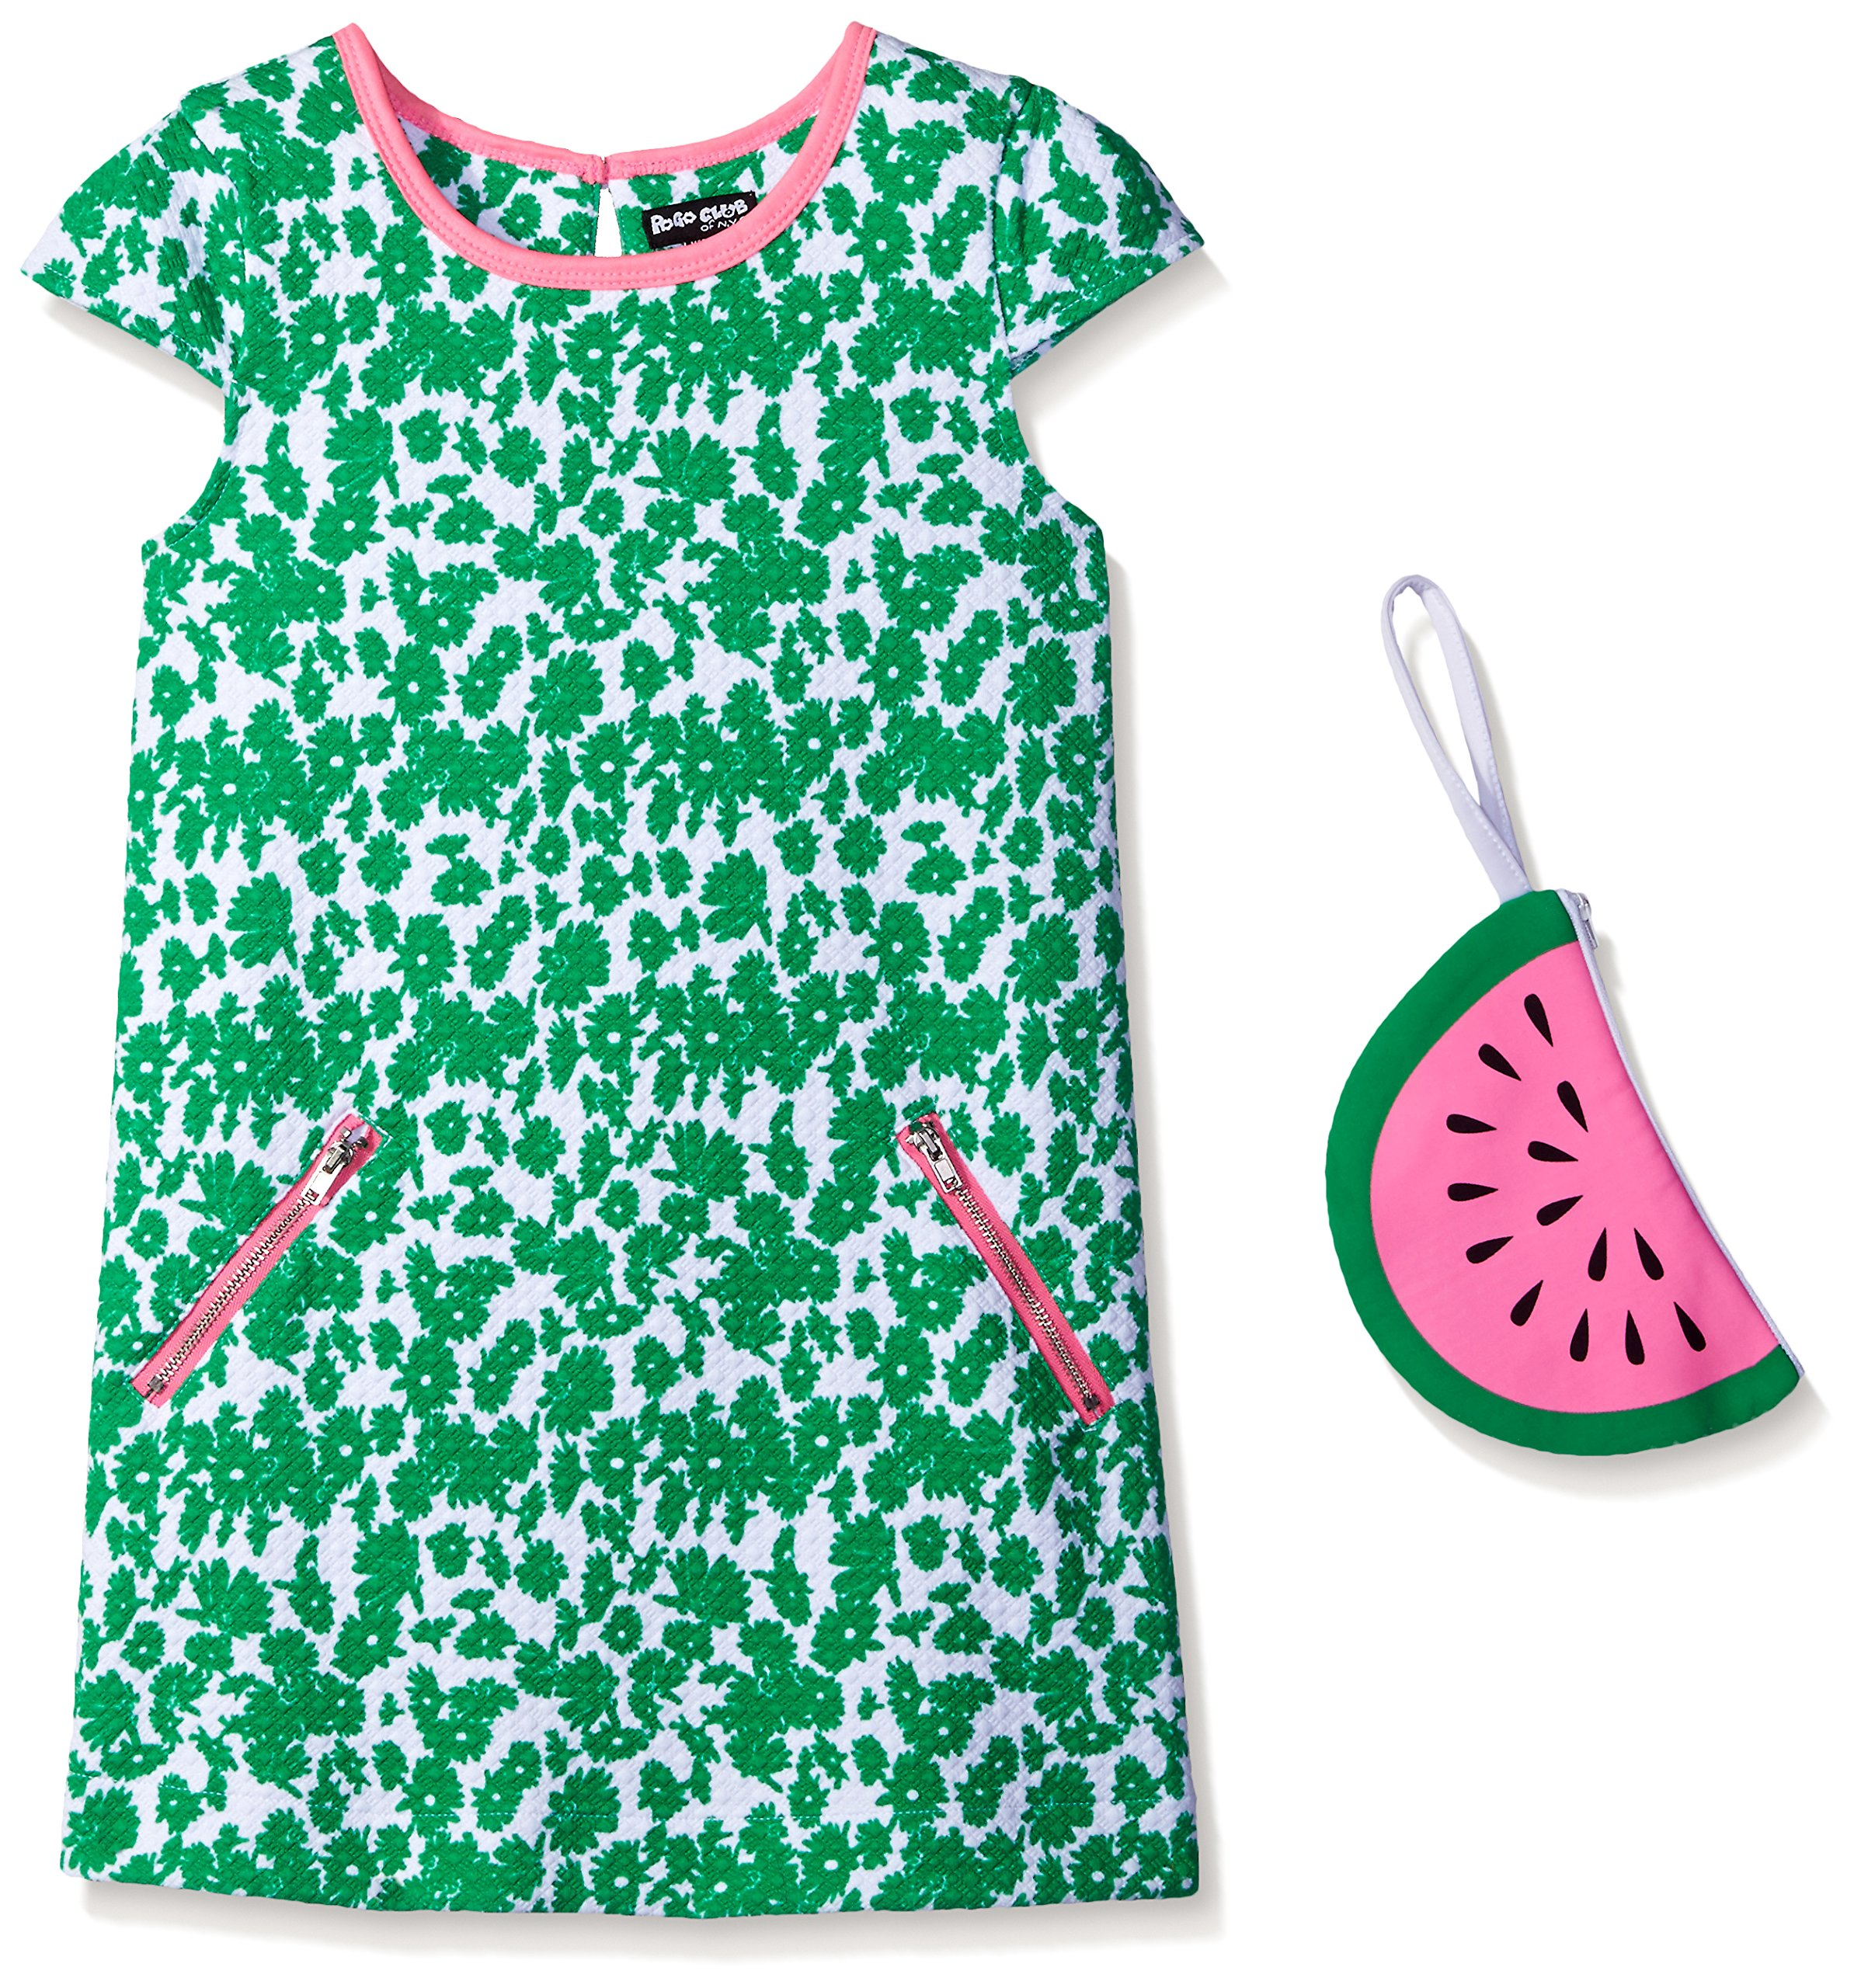 Pogo Club Little Girls Weekend in Newport Printed Textured Knit Dress with Bag Green Small/4